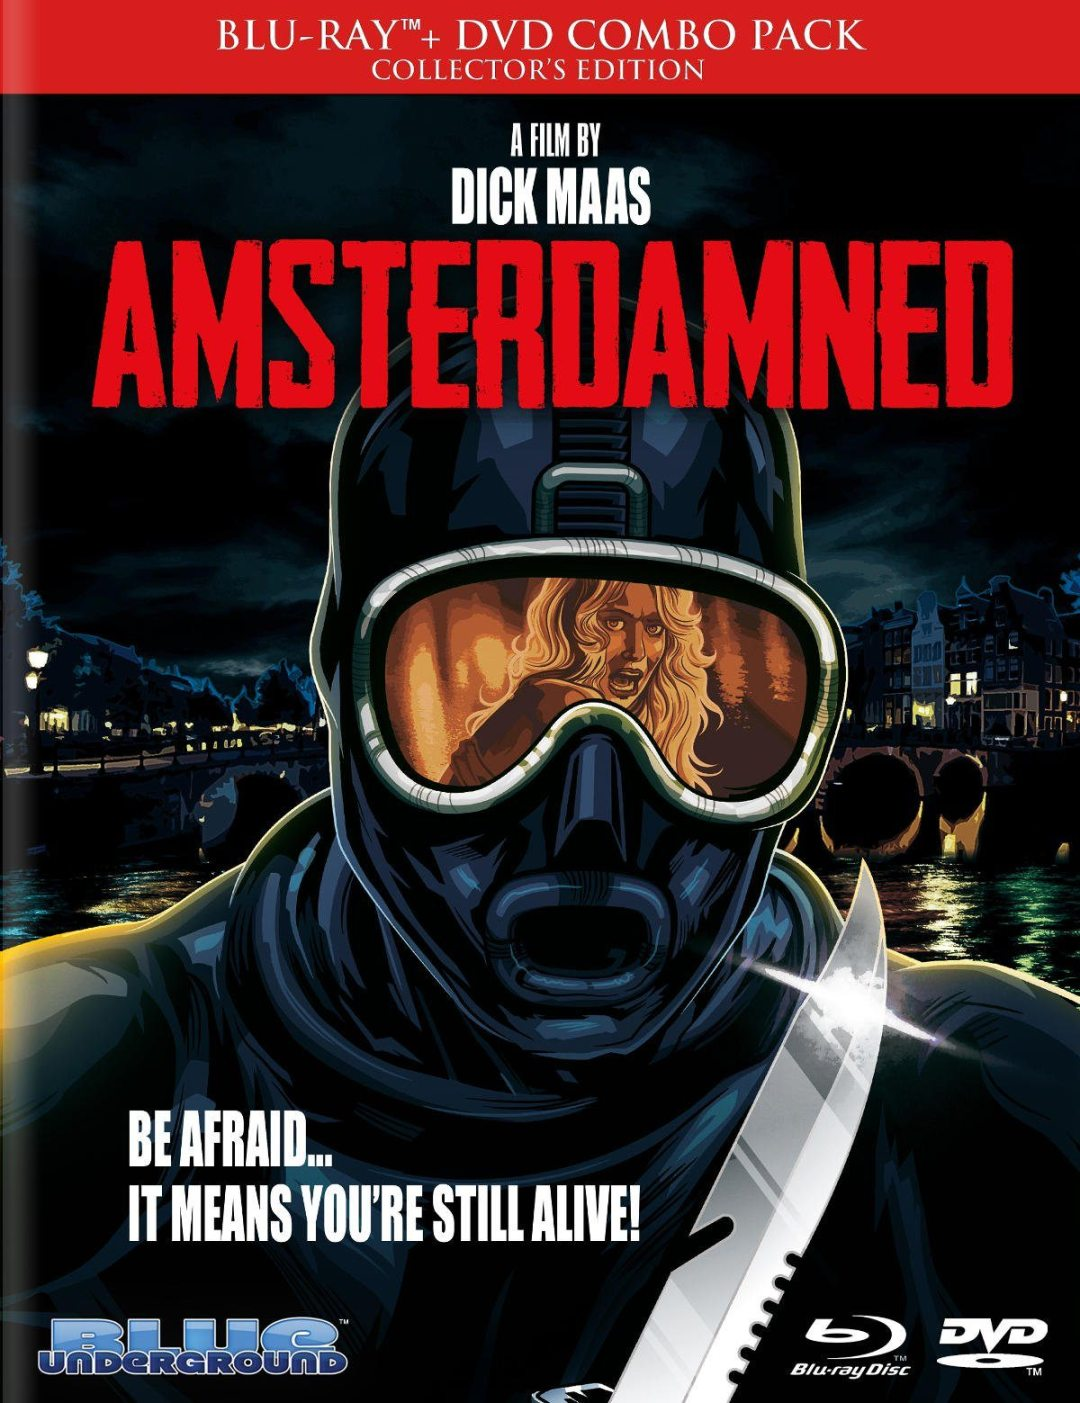 'Amsterdamned' Limited Edition Release Details